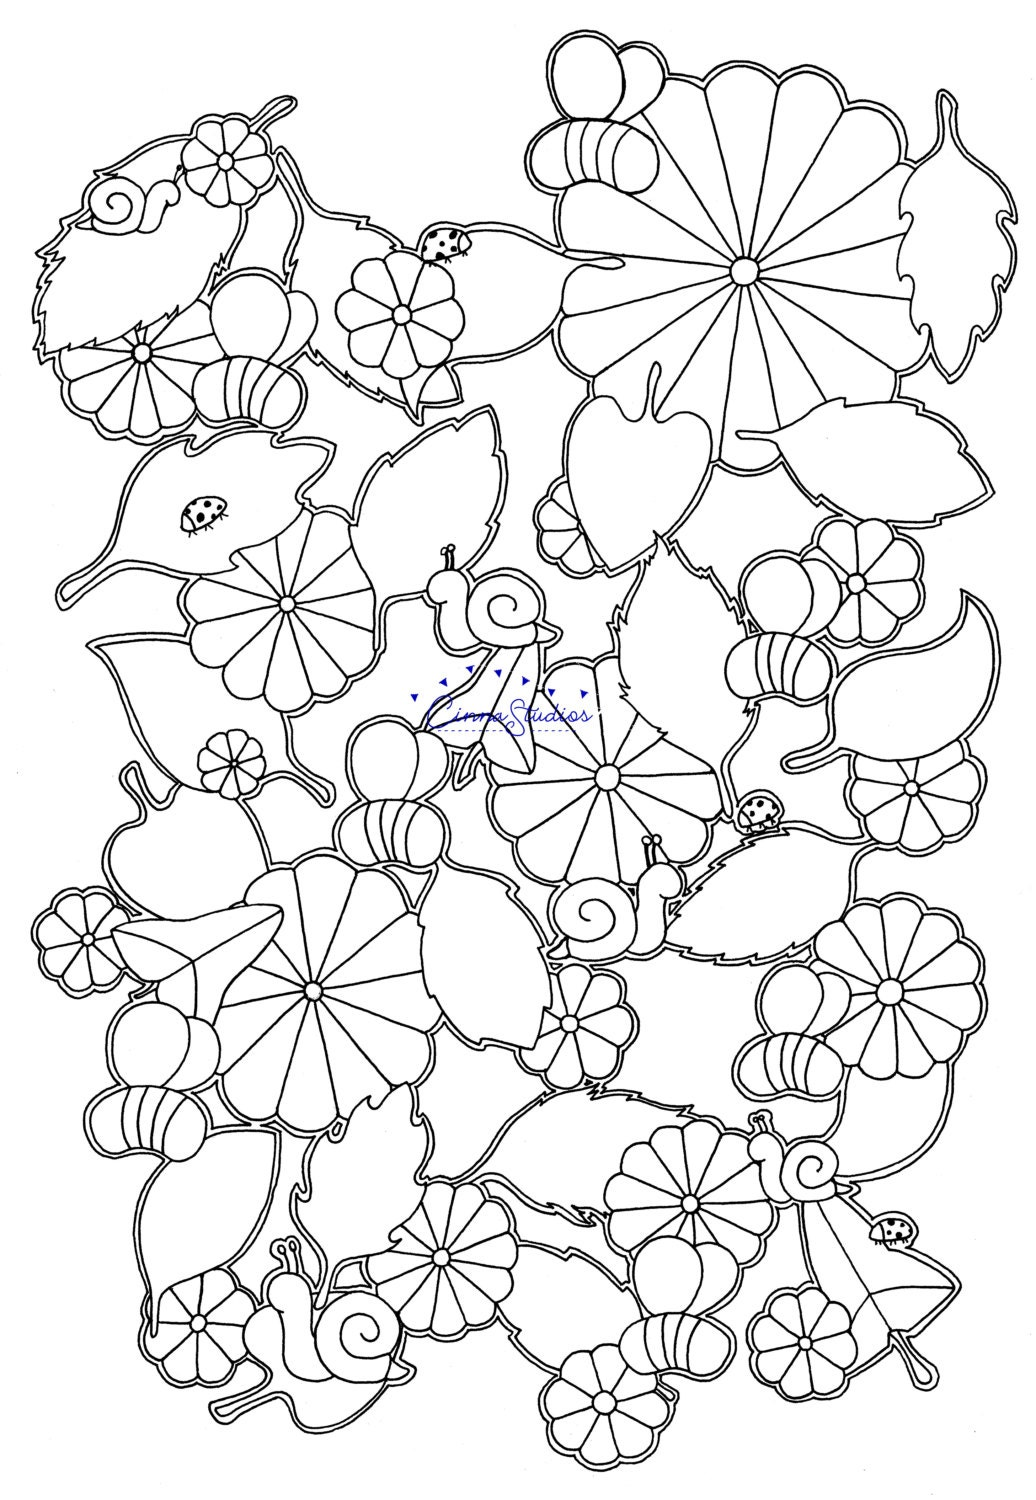 bees ii coloring page coloring download printable page